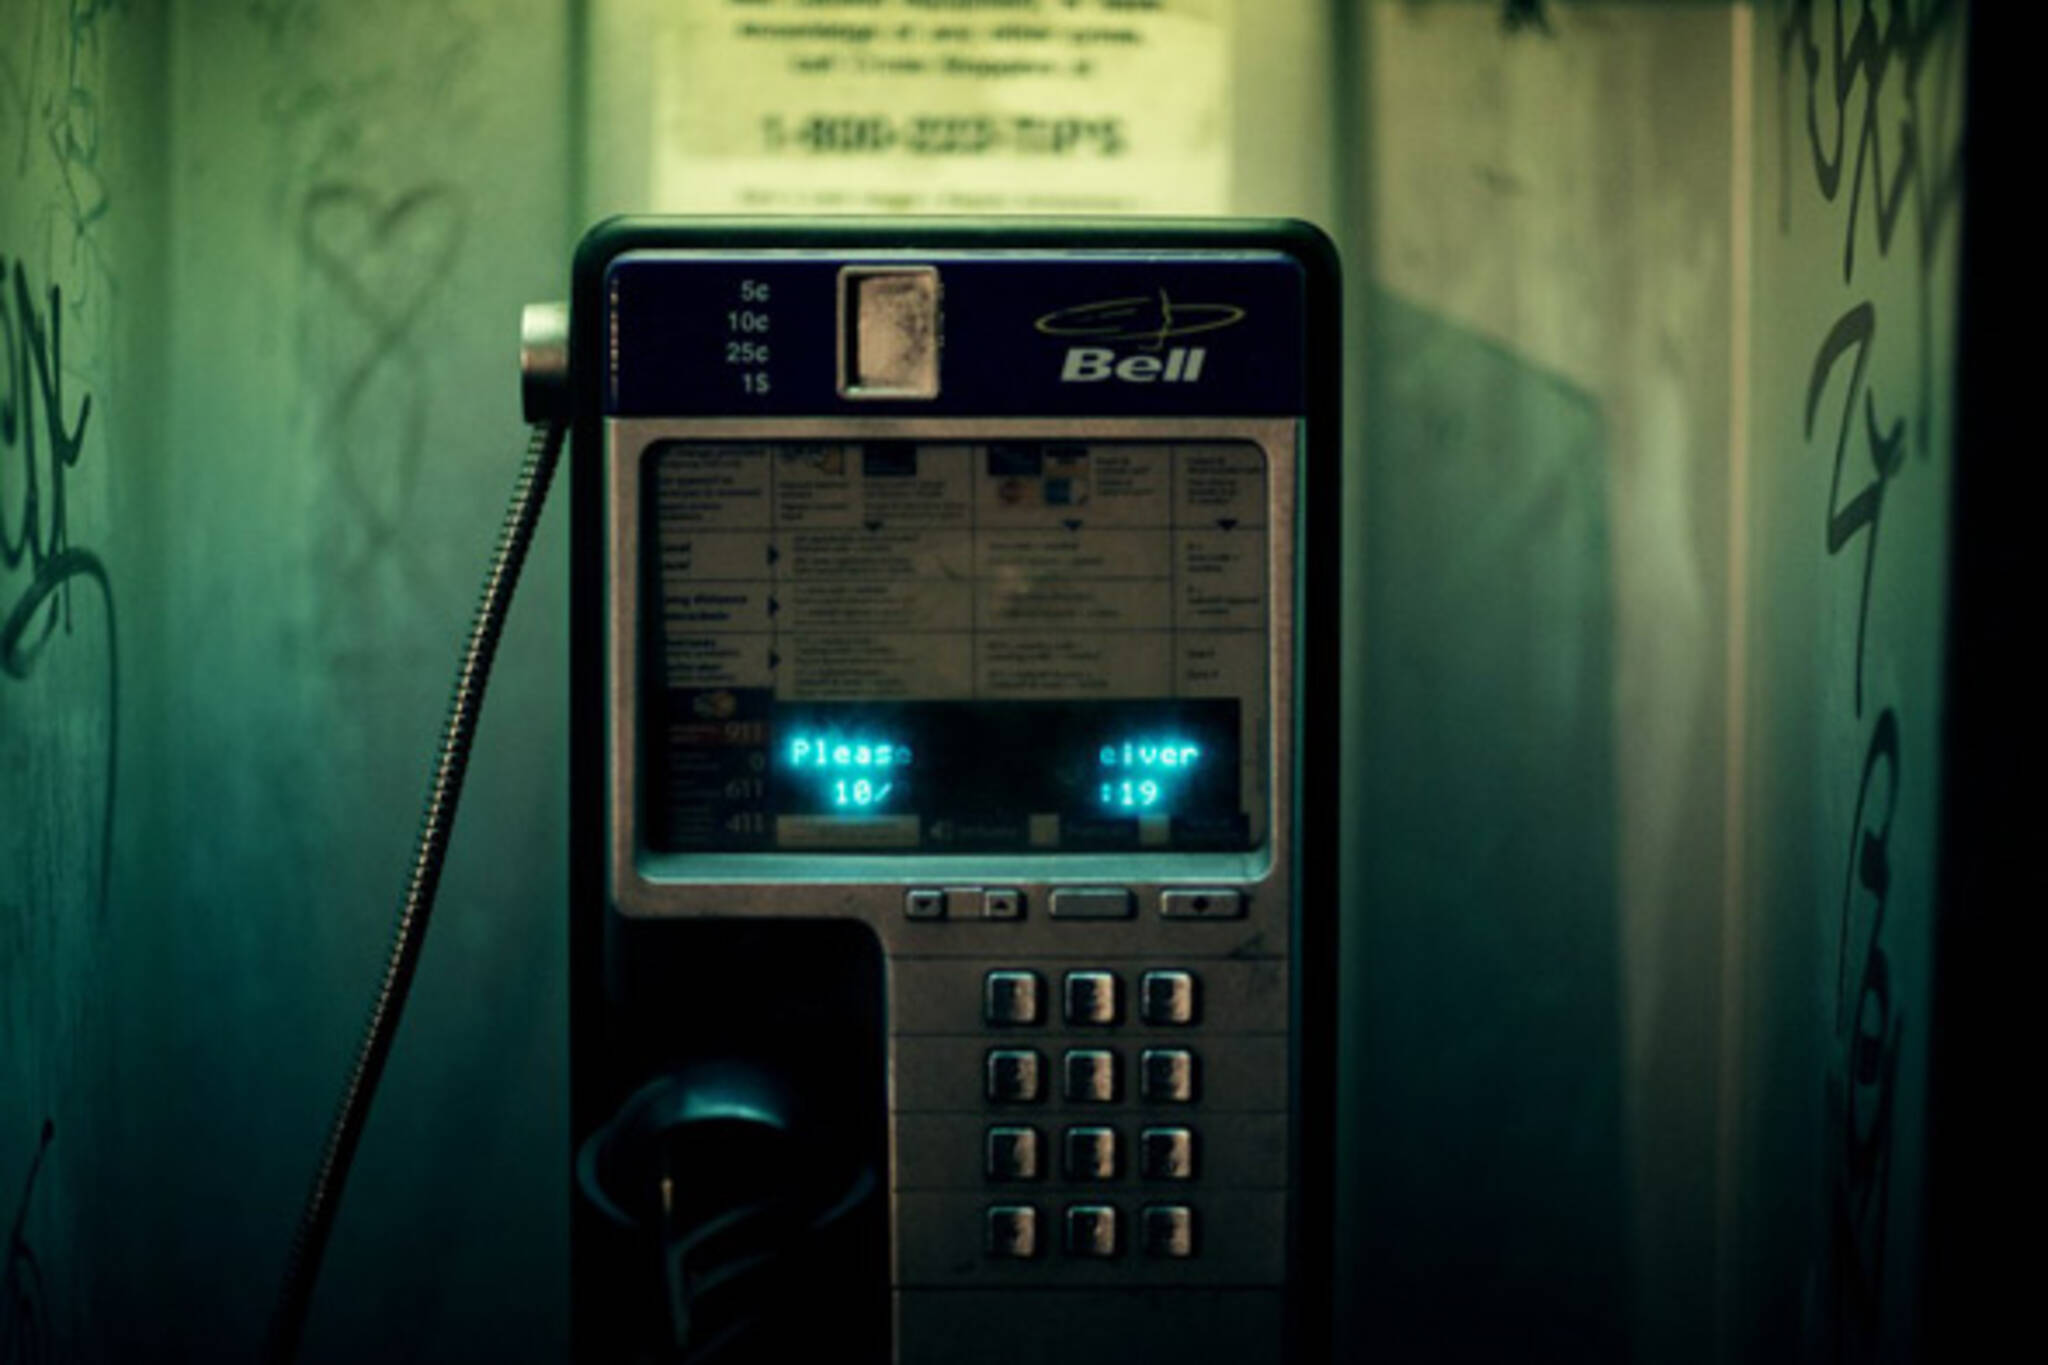 Bell Payphone